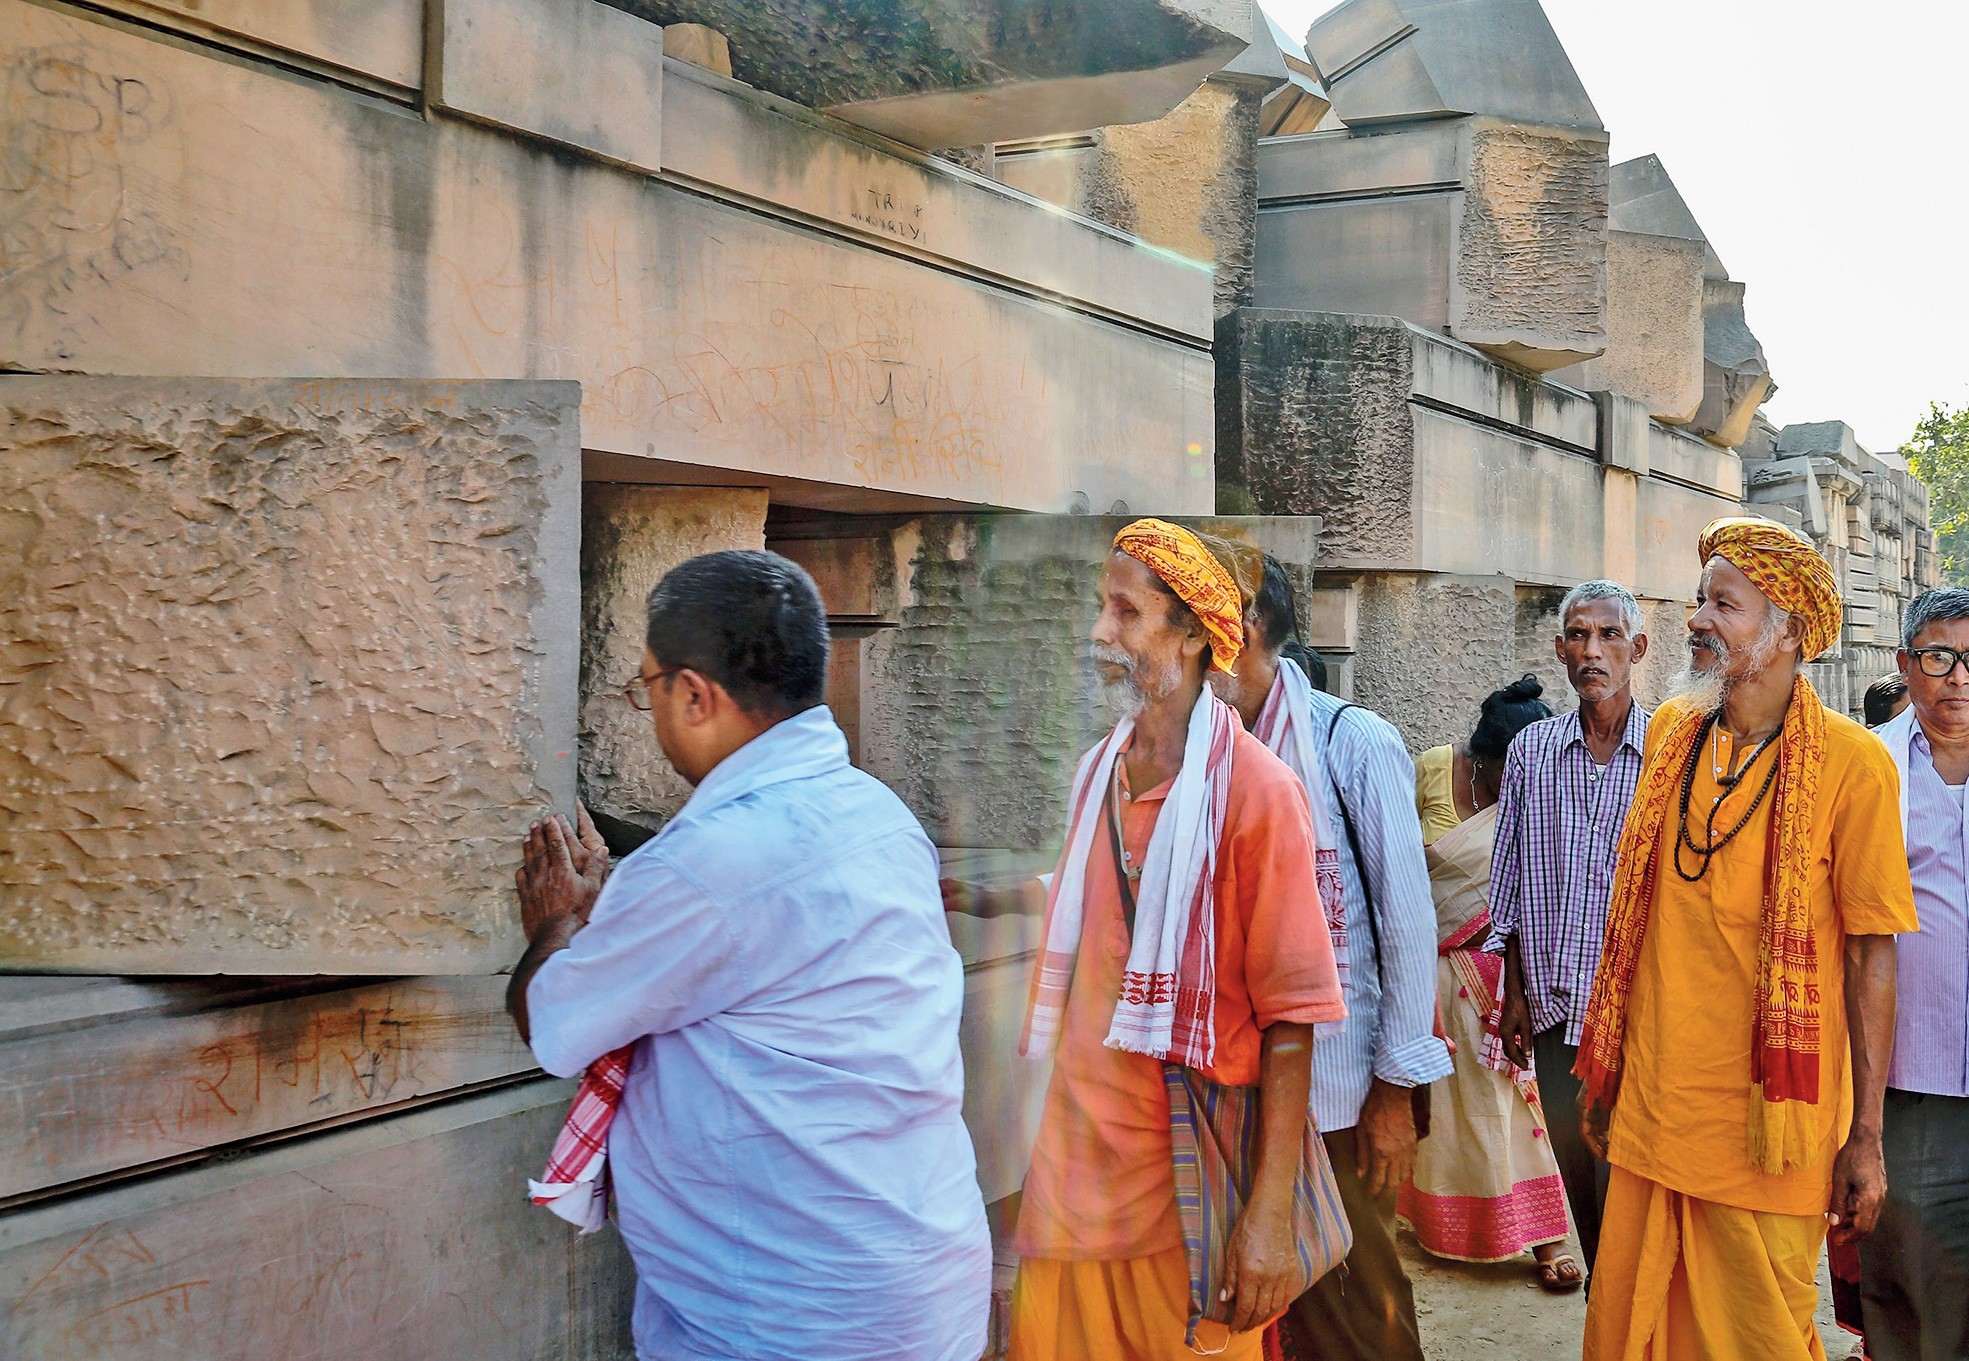 SC refuses to fast-track Ayodhya title case